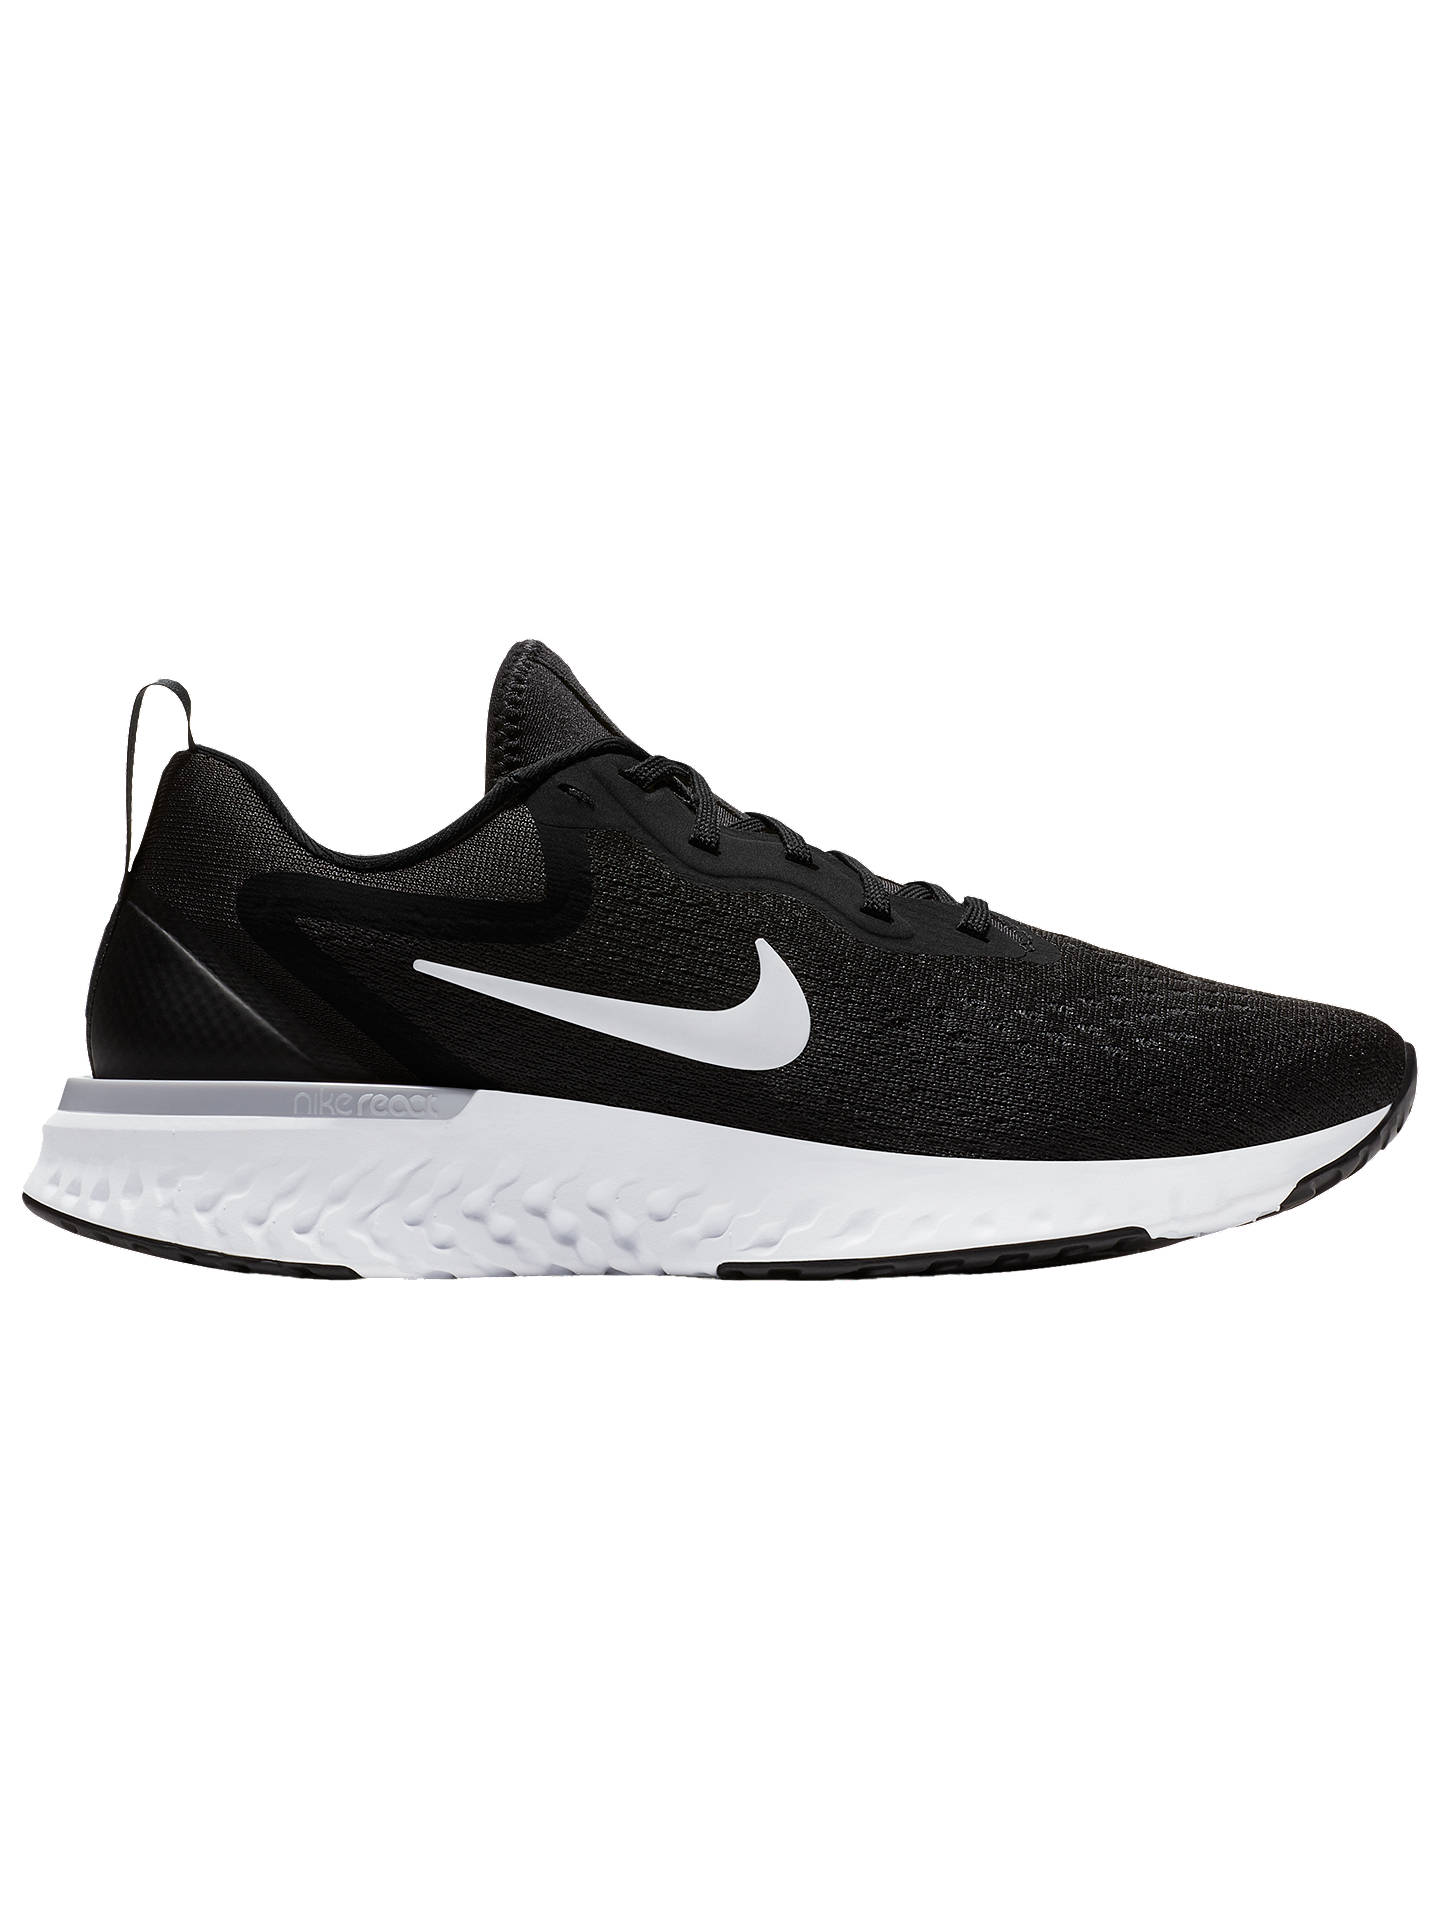 newest a8a40 5d915 australia buynike odyssey react womens running shoe black white wolf grey 4  online 7d9e9 a8fea